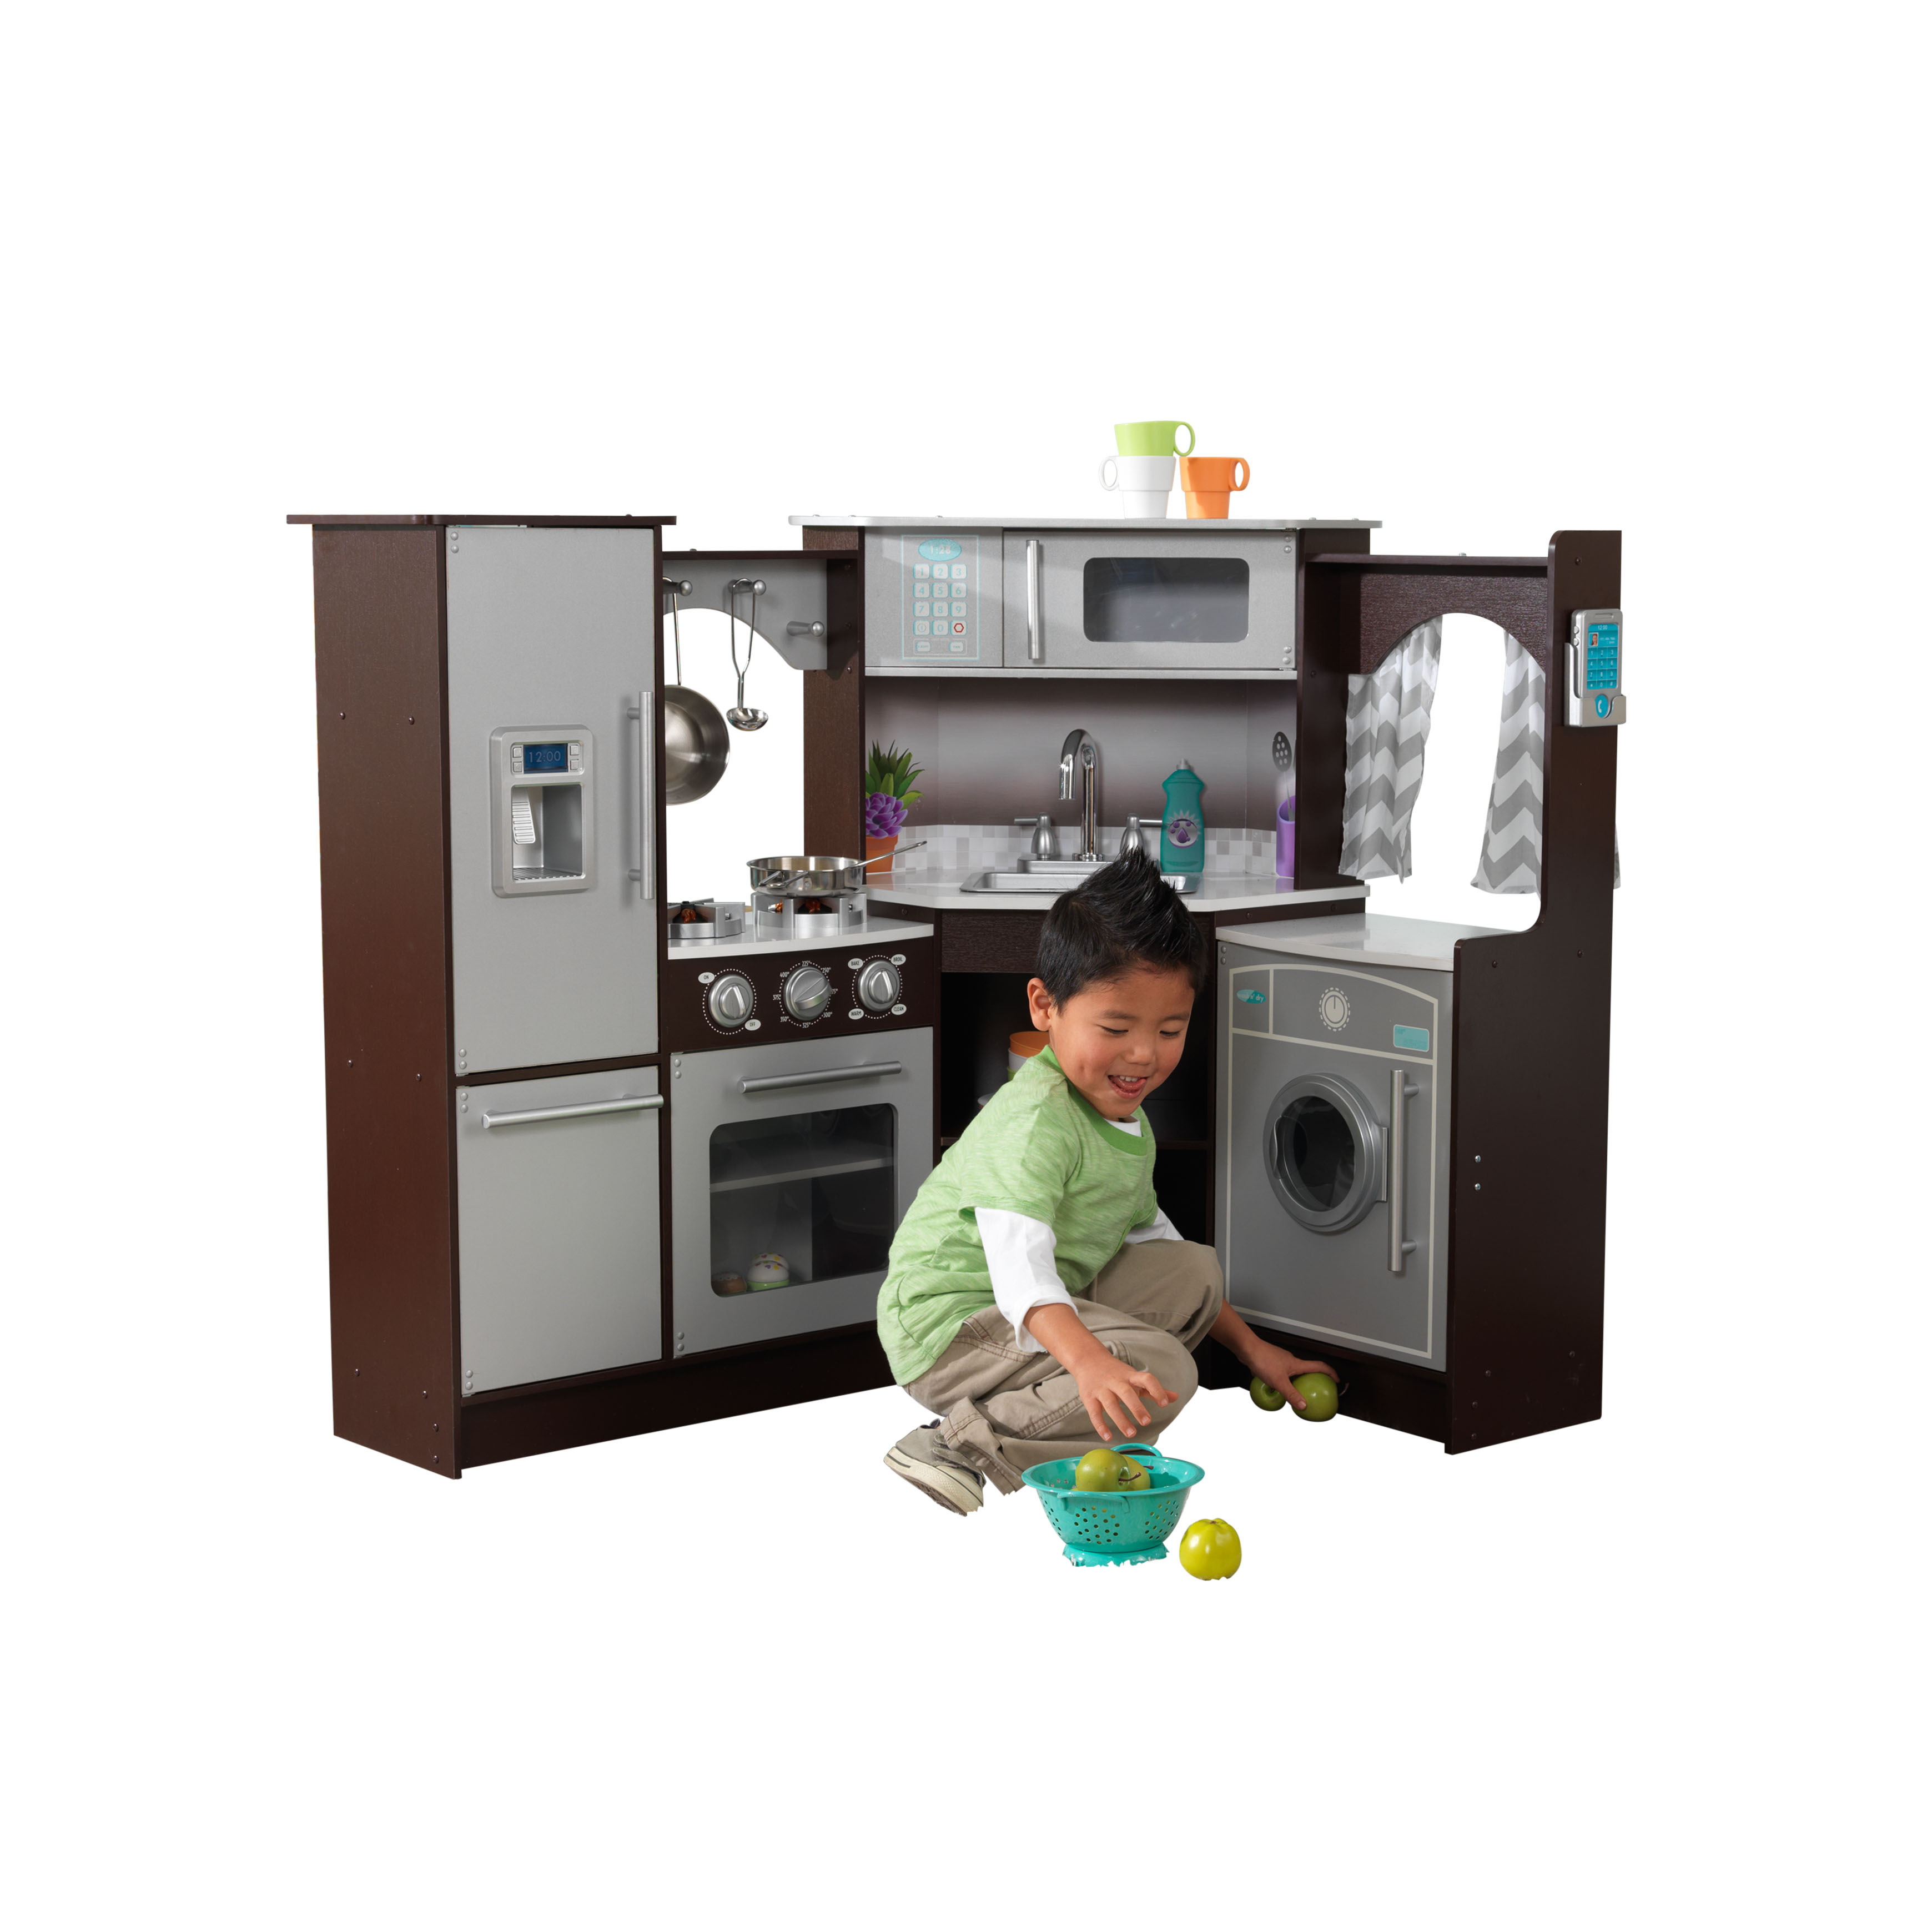 KidKraft Ultimate Corner Play Kitchen with Lights & Sounds Espresso by KidKraft